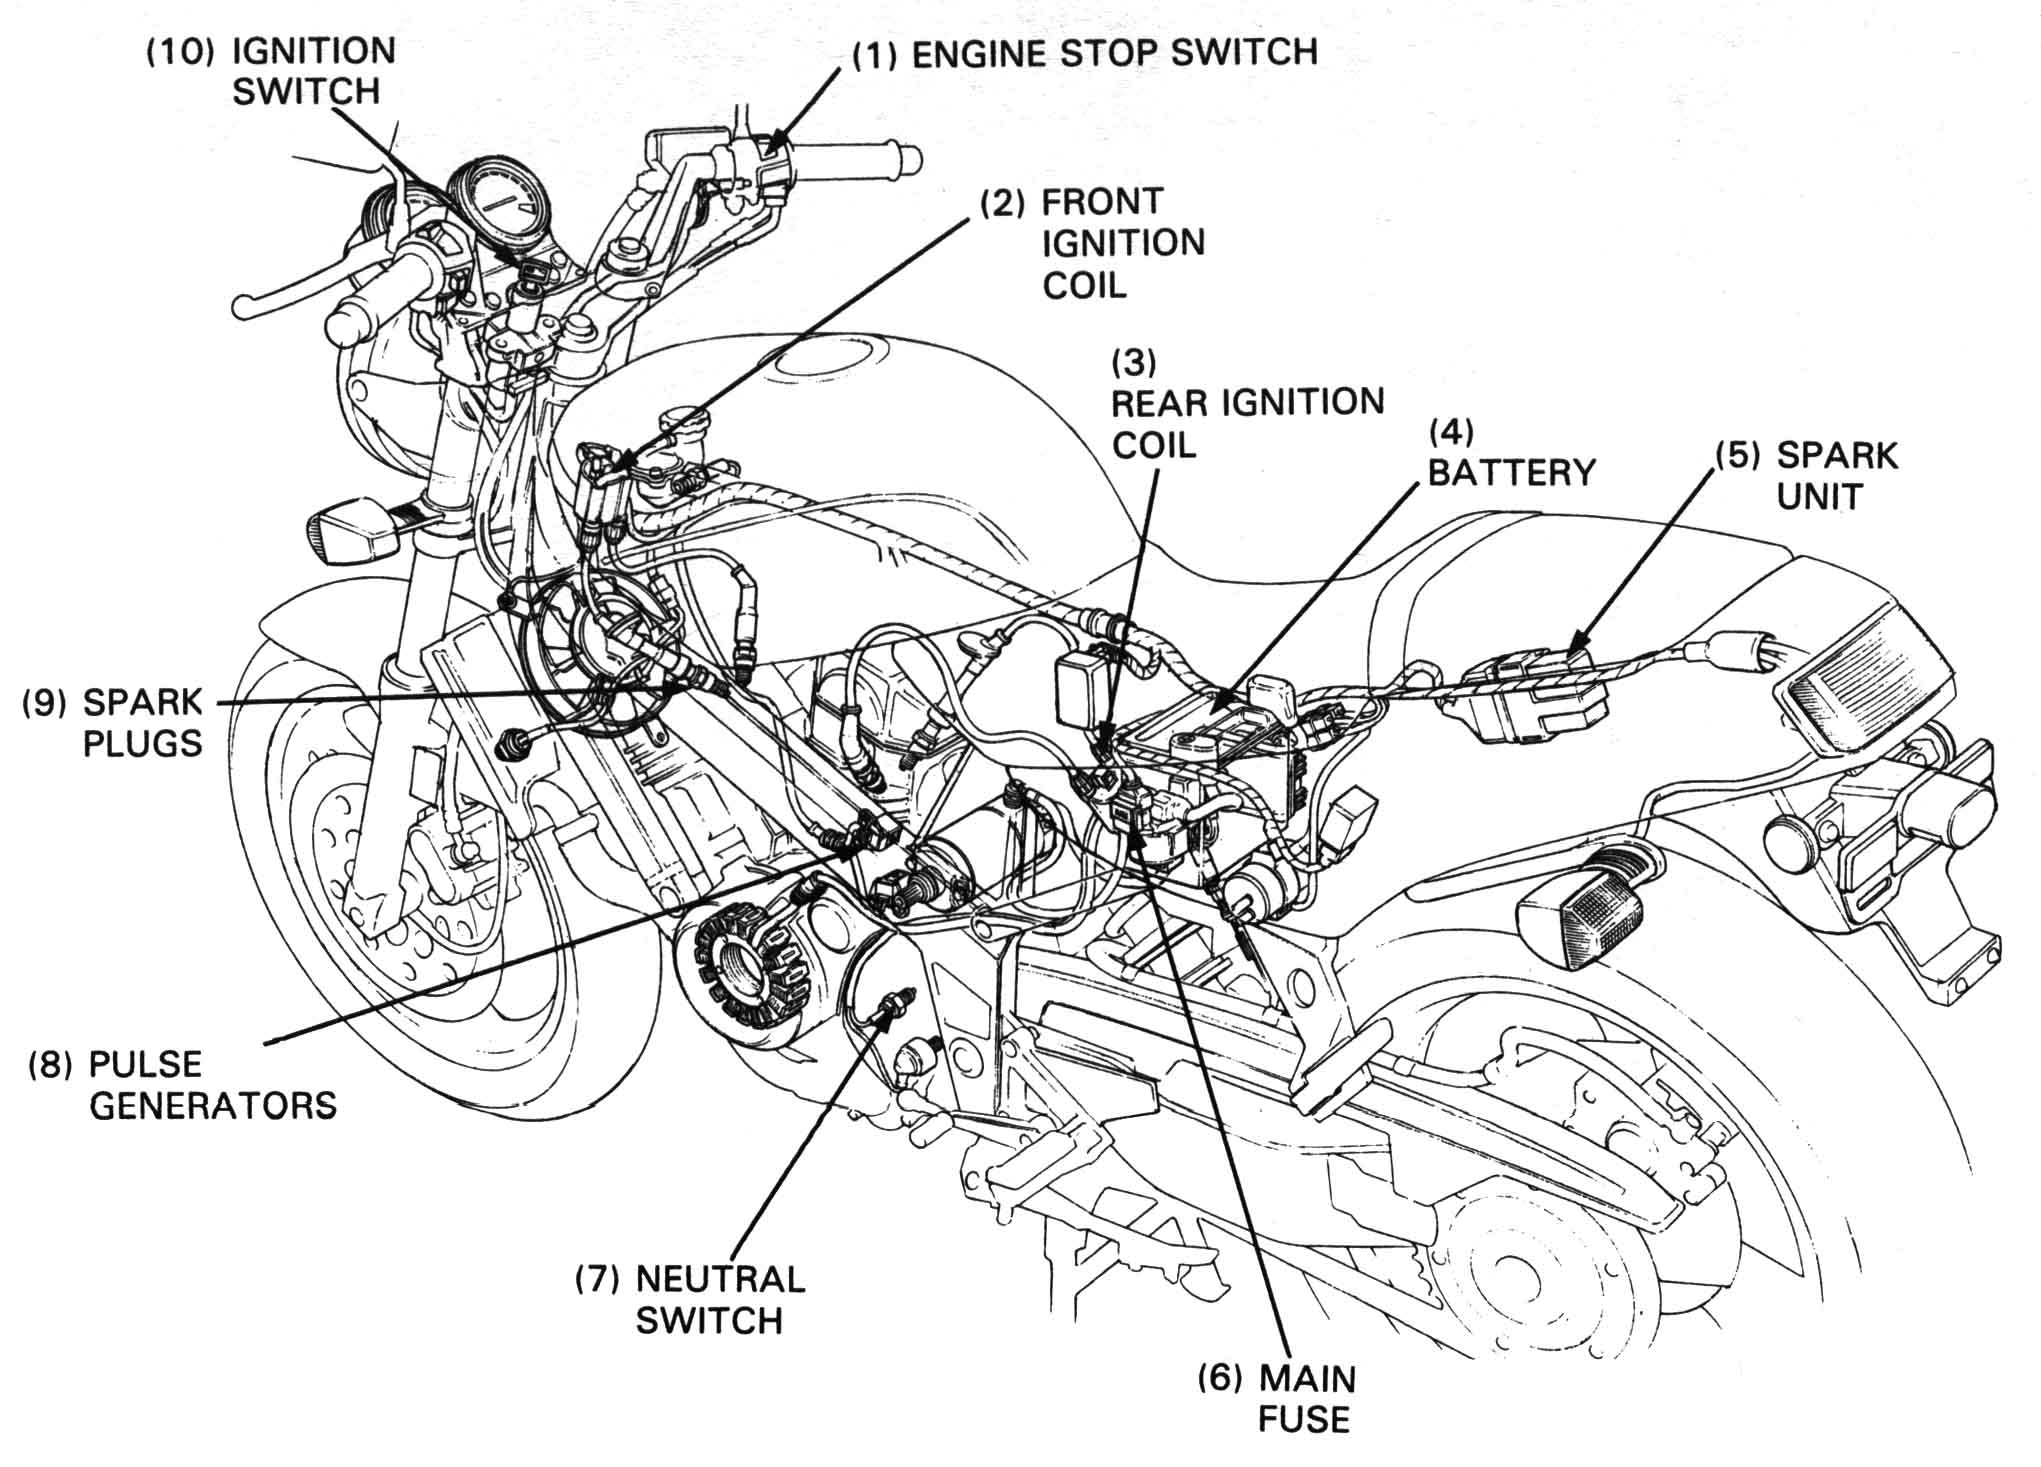 honda nt650 service manual section 16 ignition system rh hawkworks net 2002 Honda CR-V Wire Harness Diagram honda deauville 700 wiring diagram